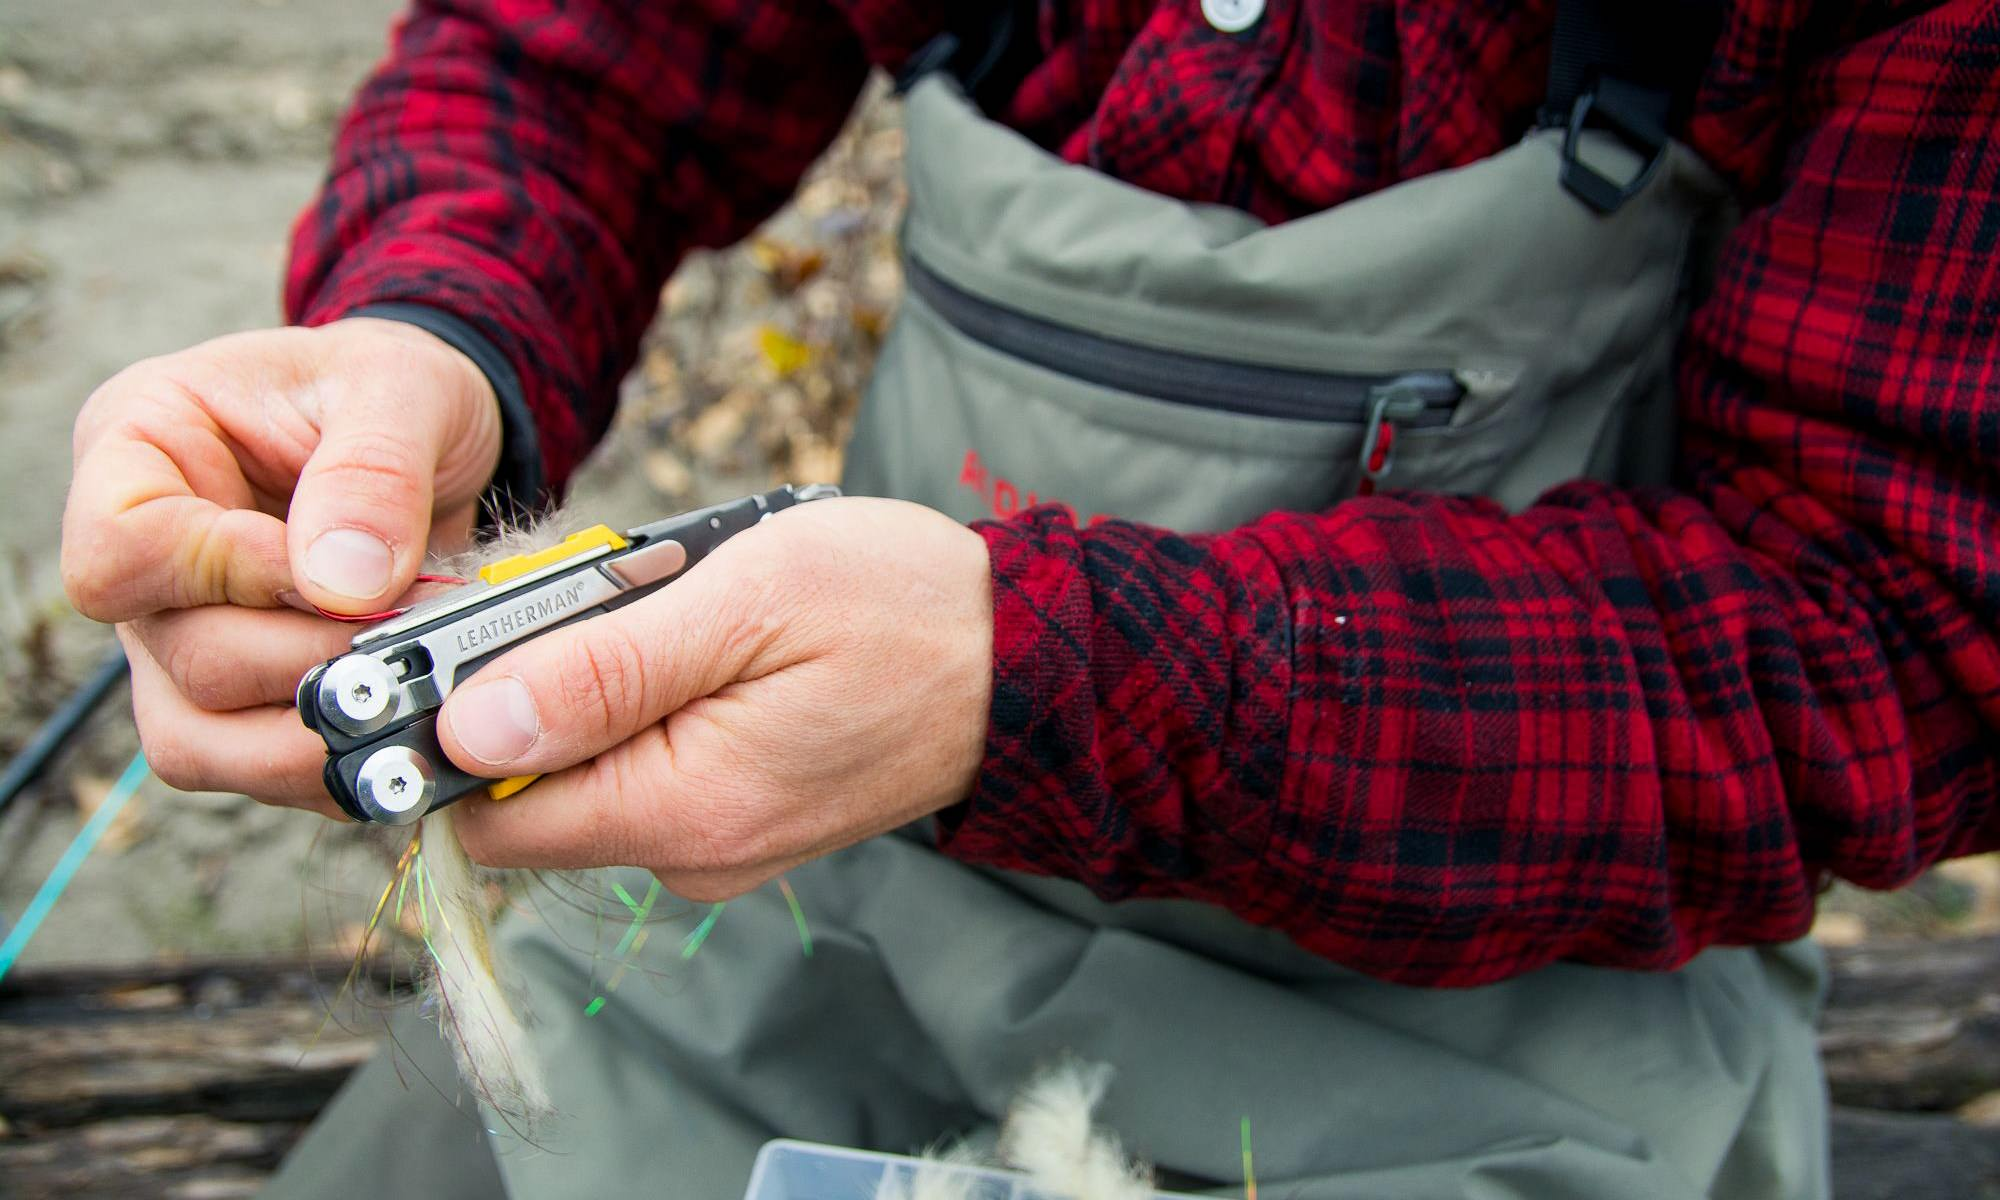 5 Handy Uses for Multitools During Outdoor Adventures